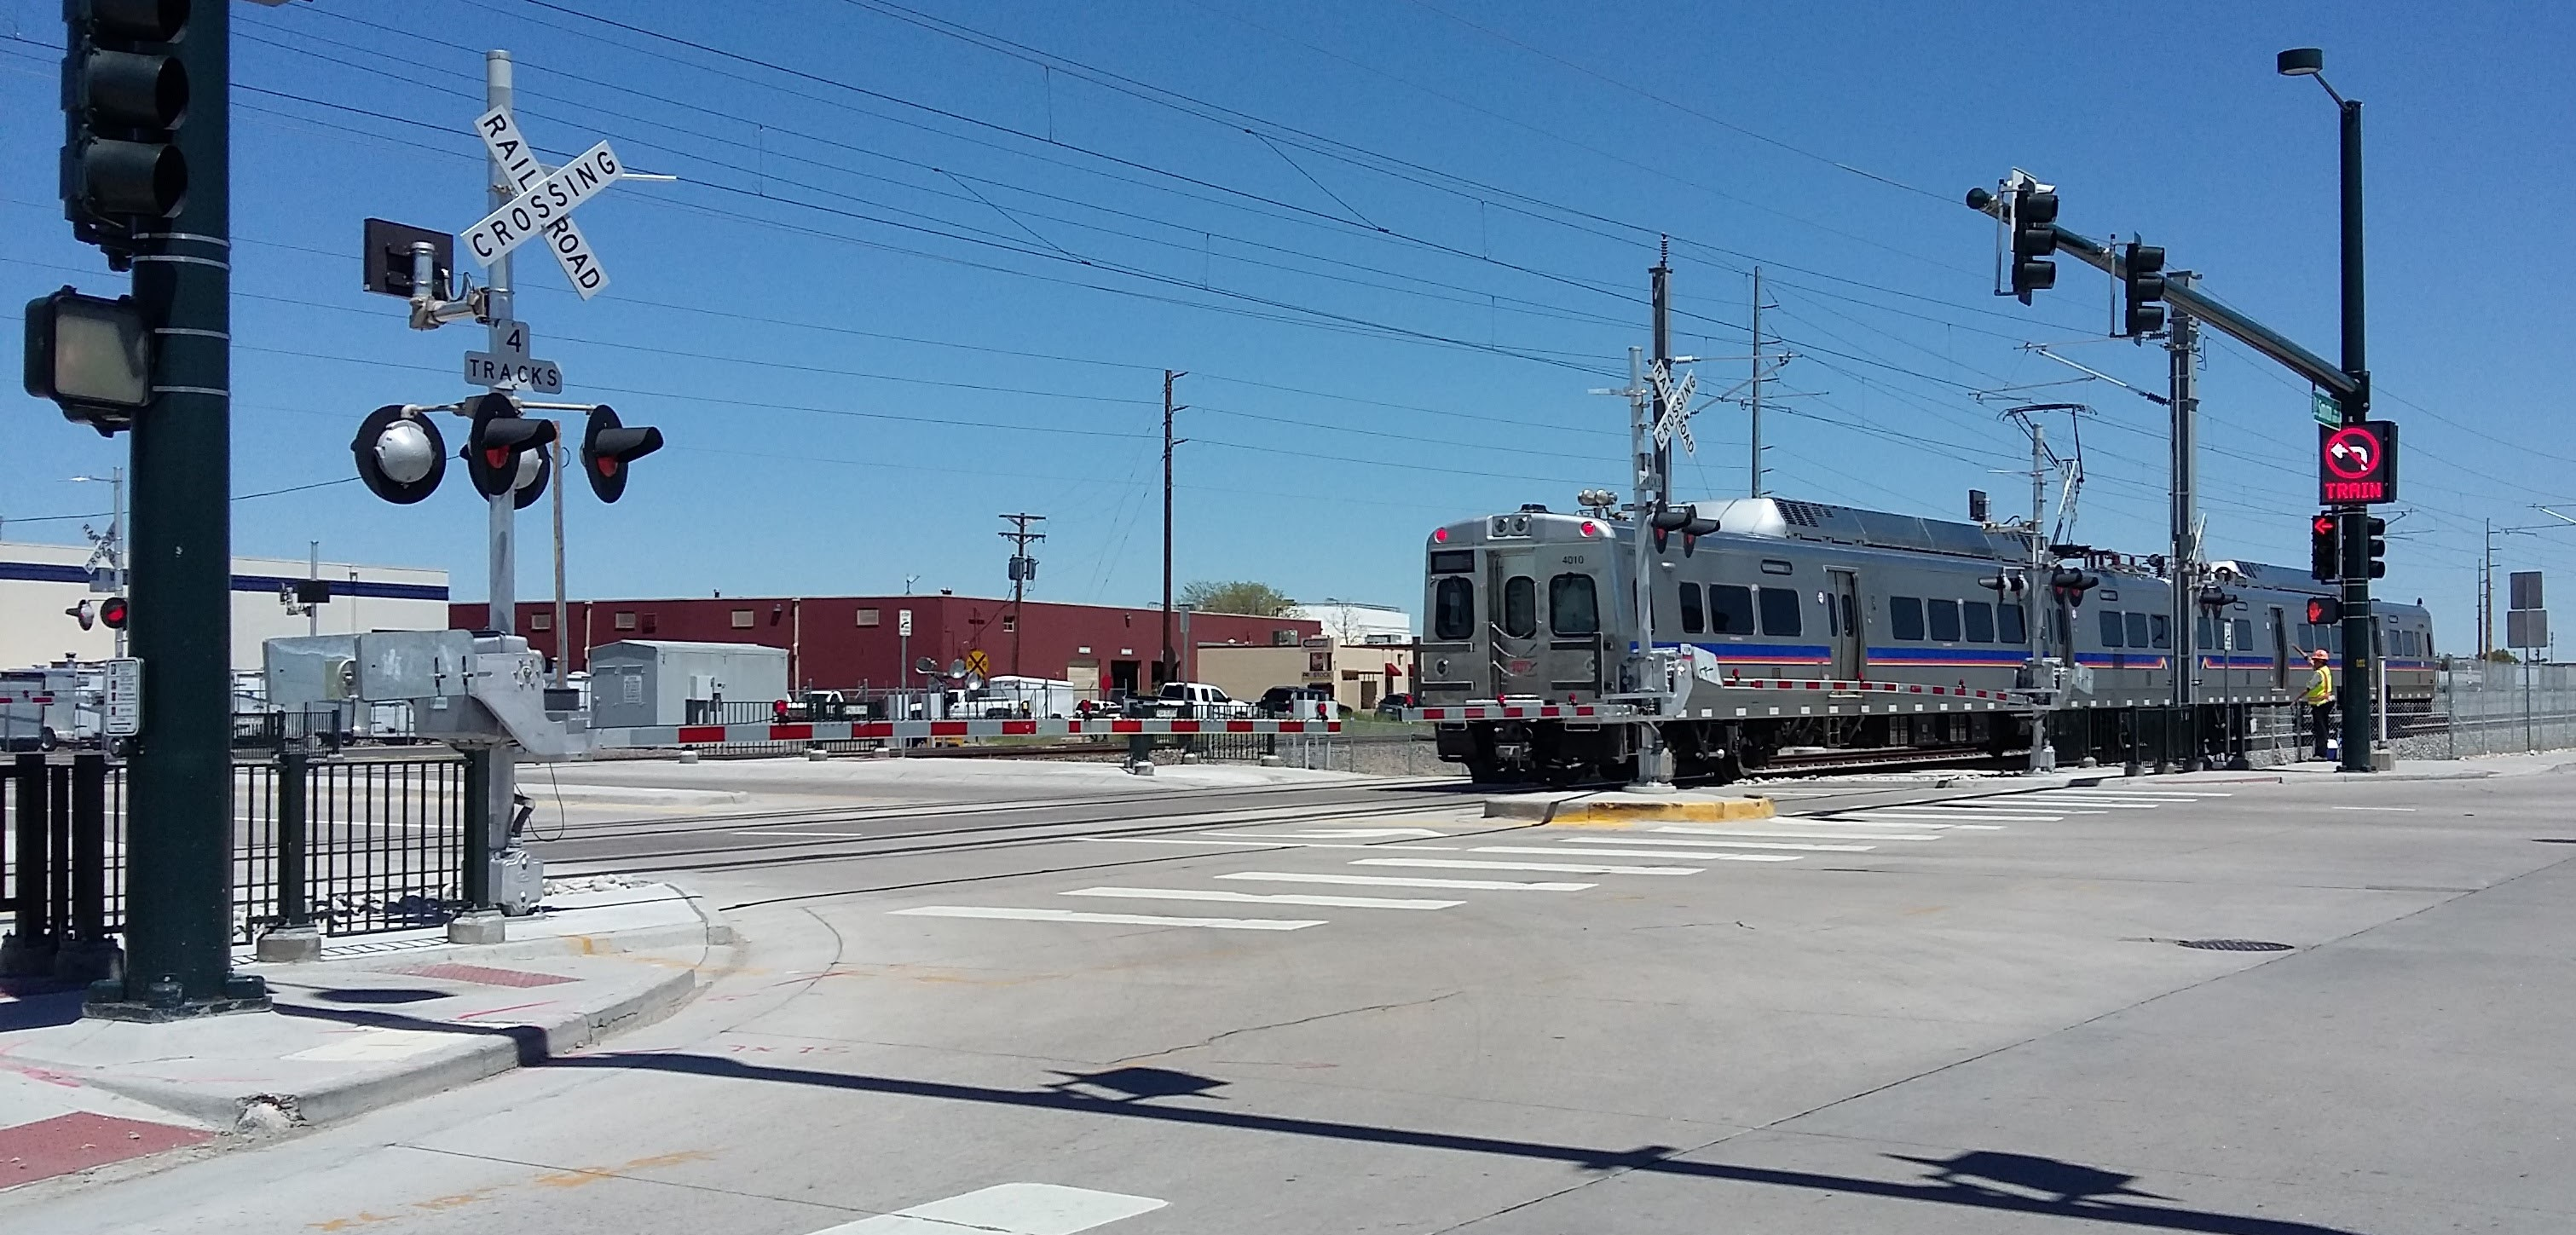 New Denver RTD electric-catenary heavy rail crossing at grade. Photo from Wikimedia Commons